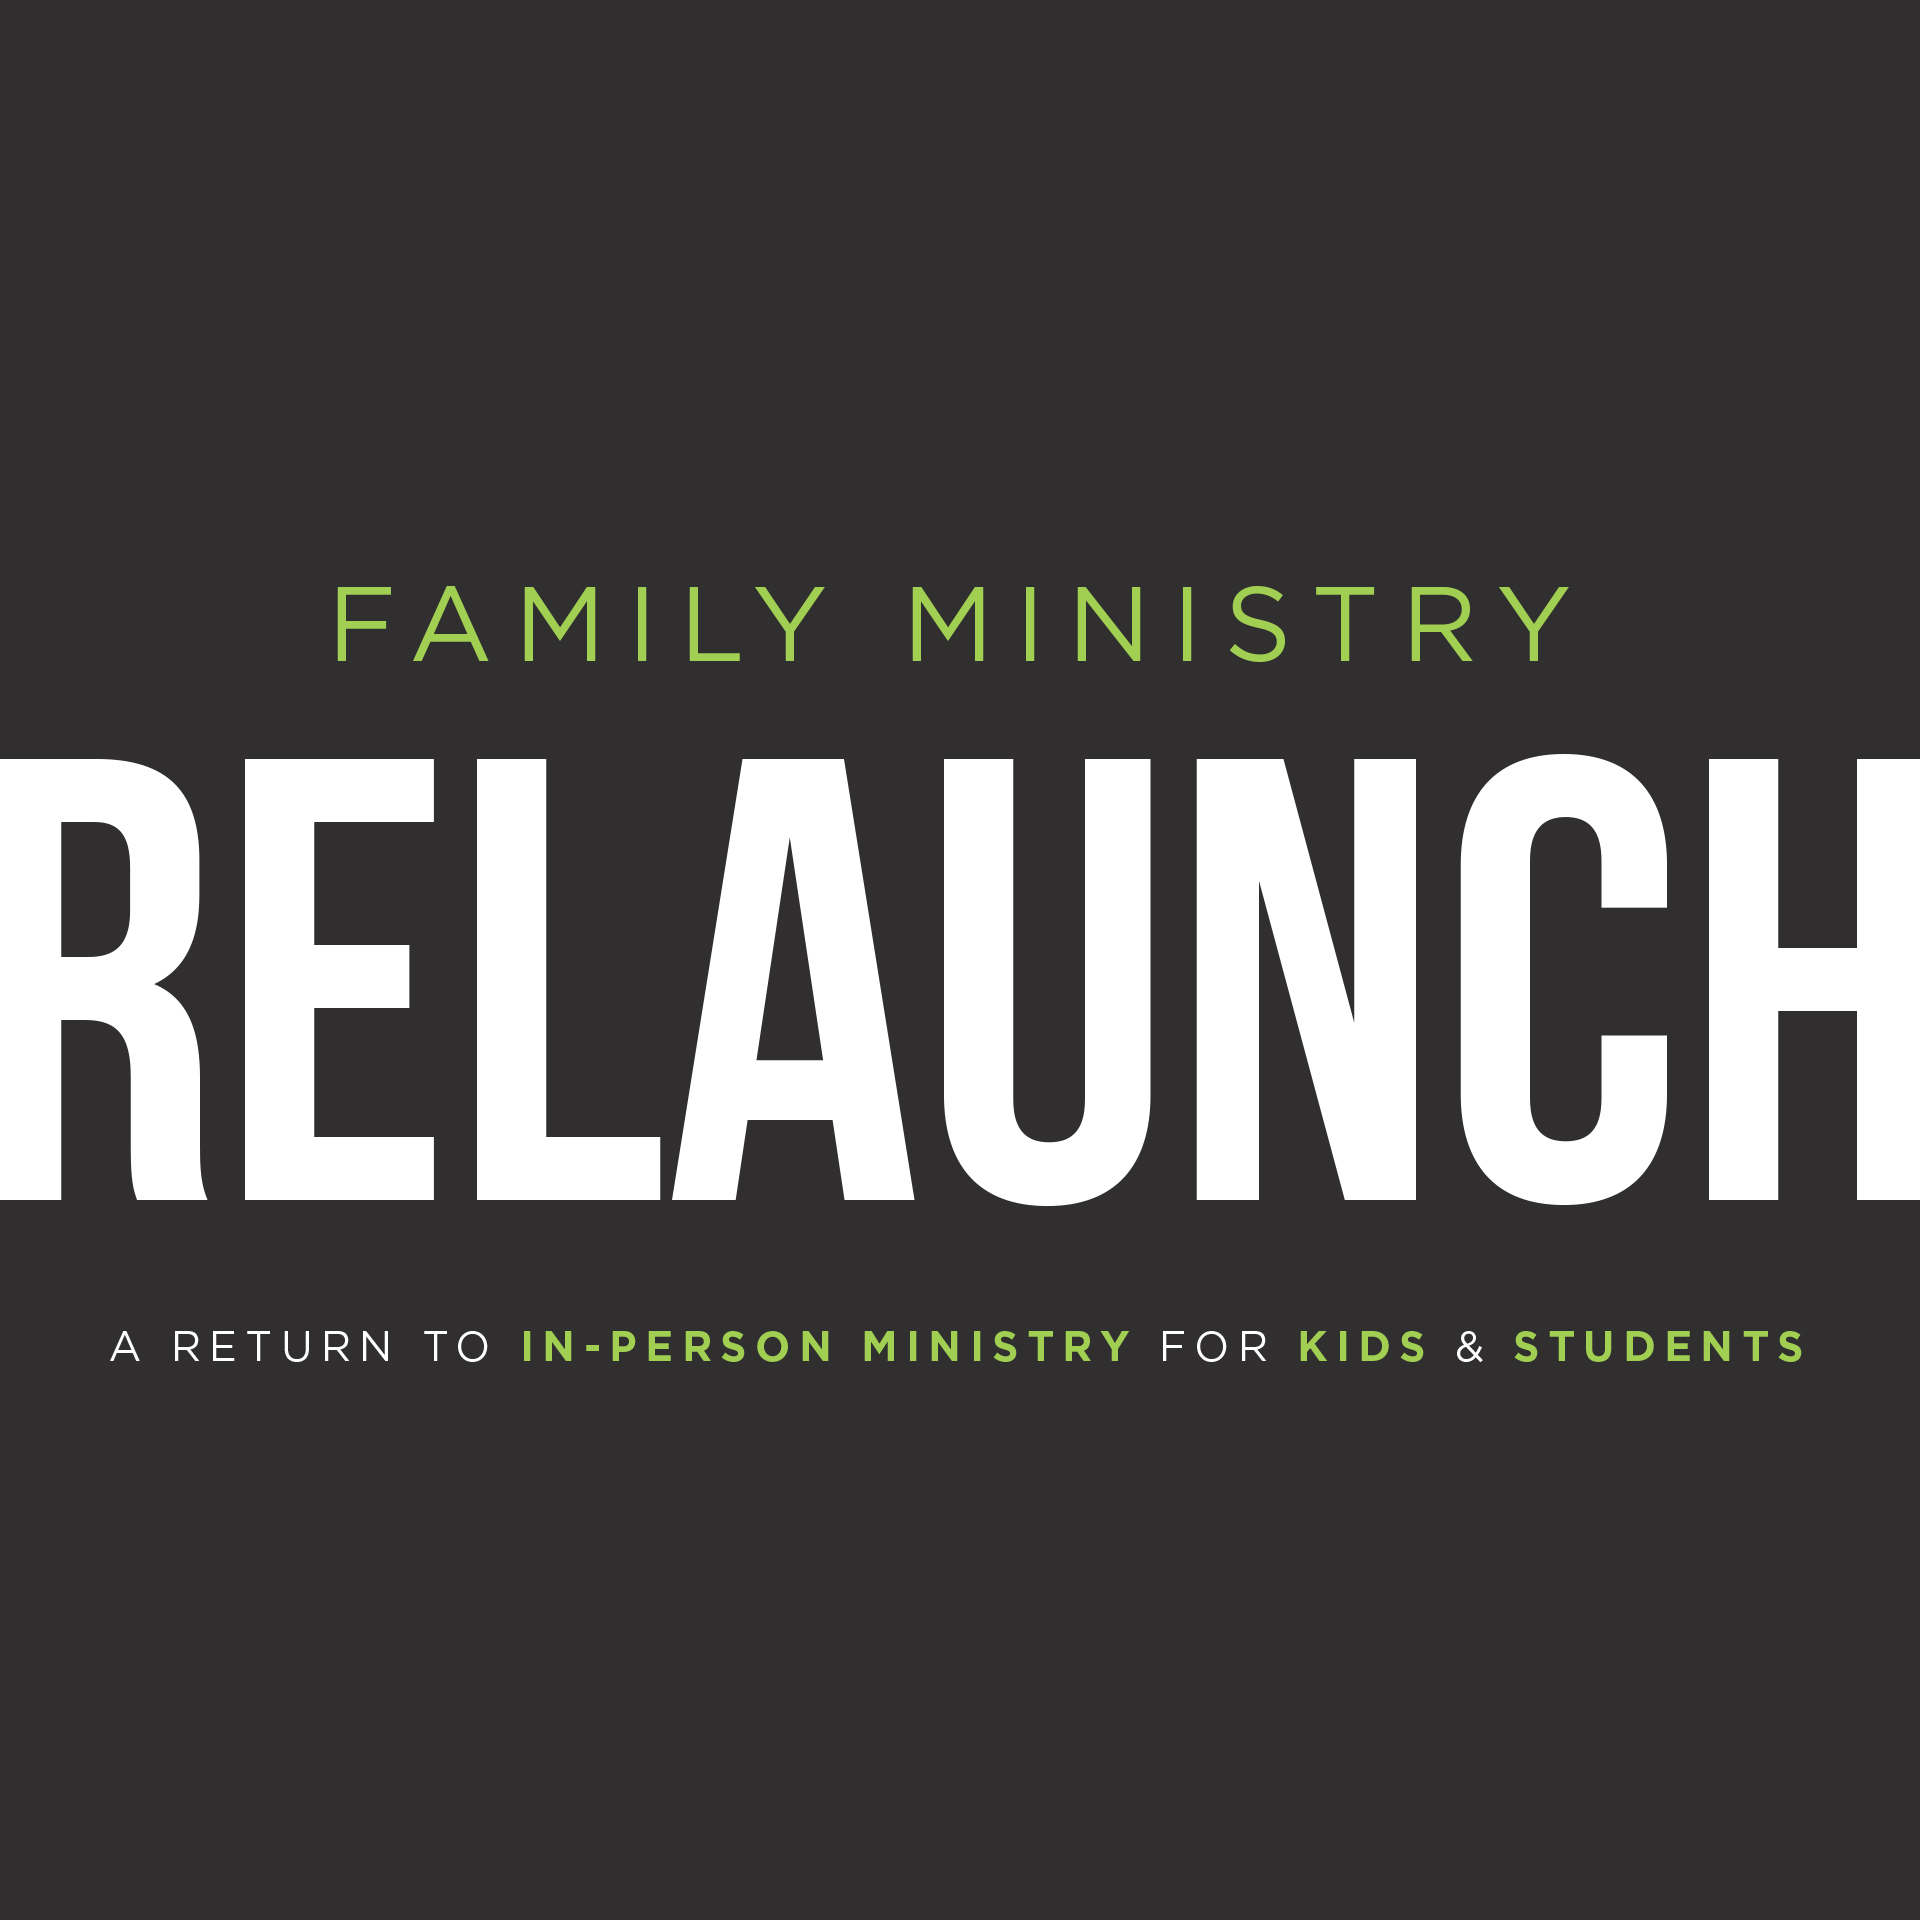 Familyministry Relaunchsquare